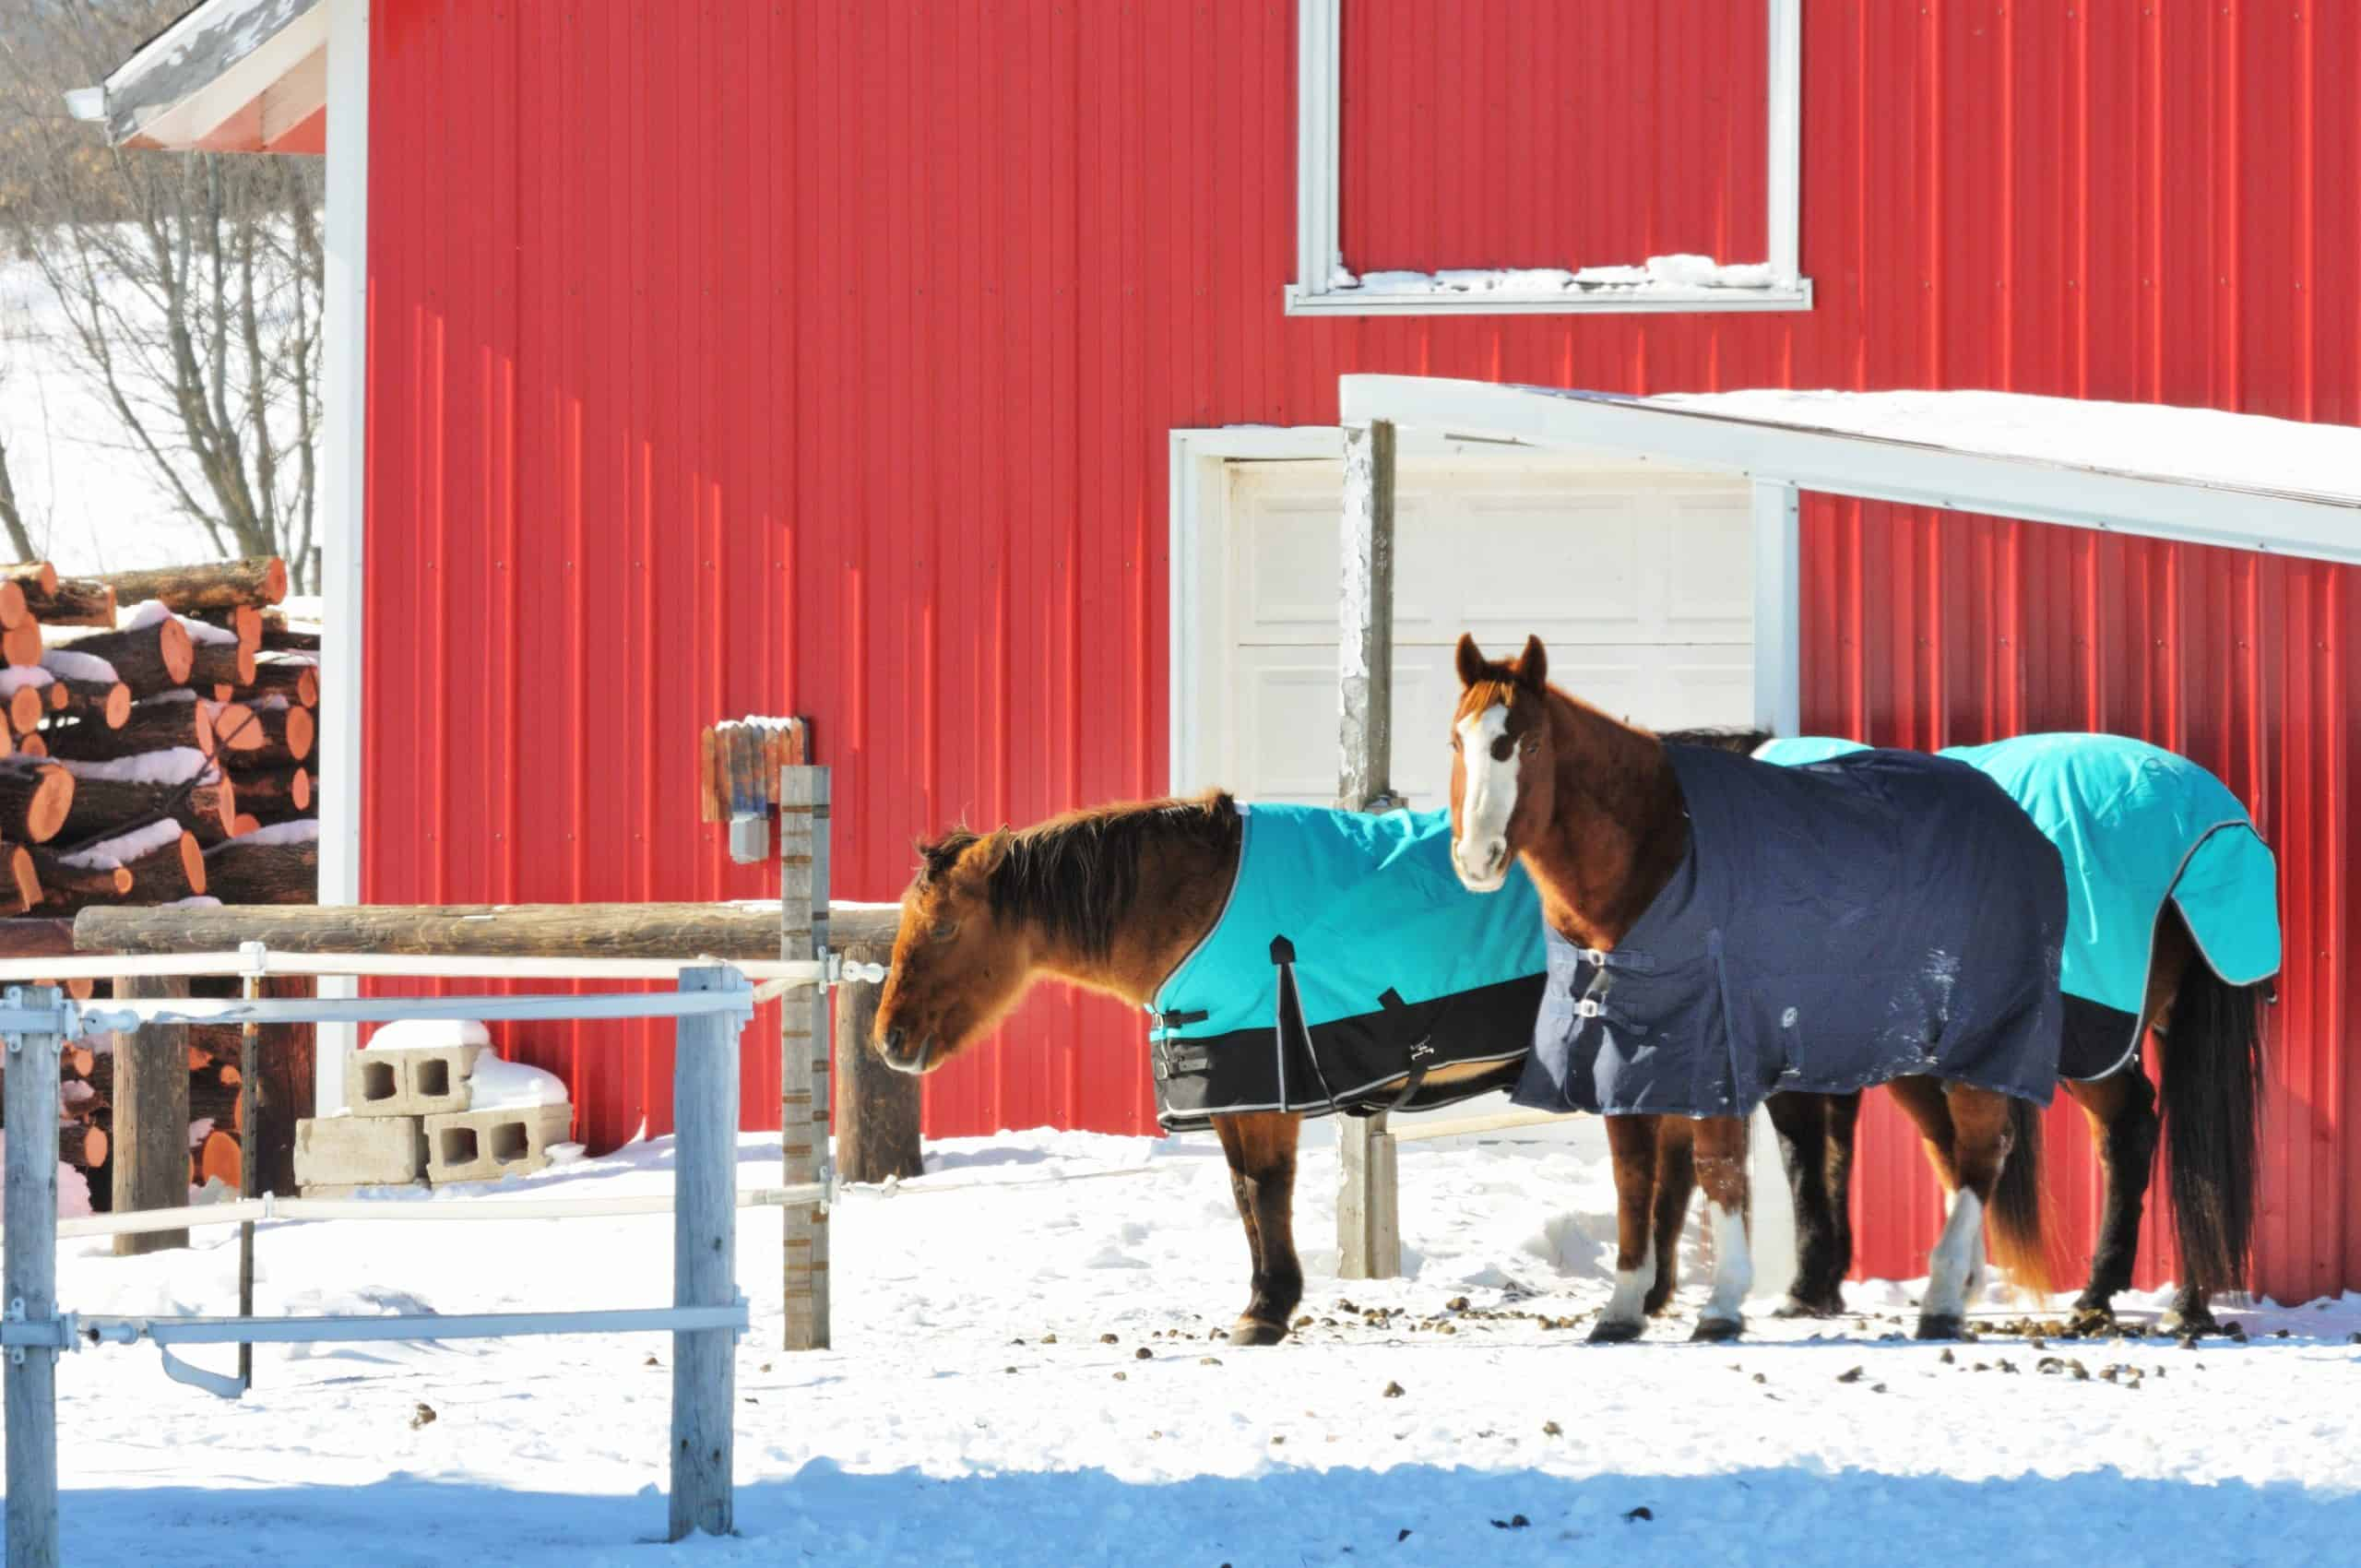 Three horses wearing blue blankets in winter corral.